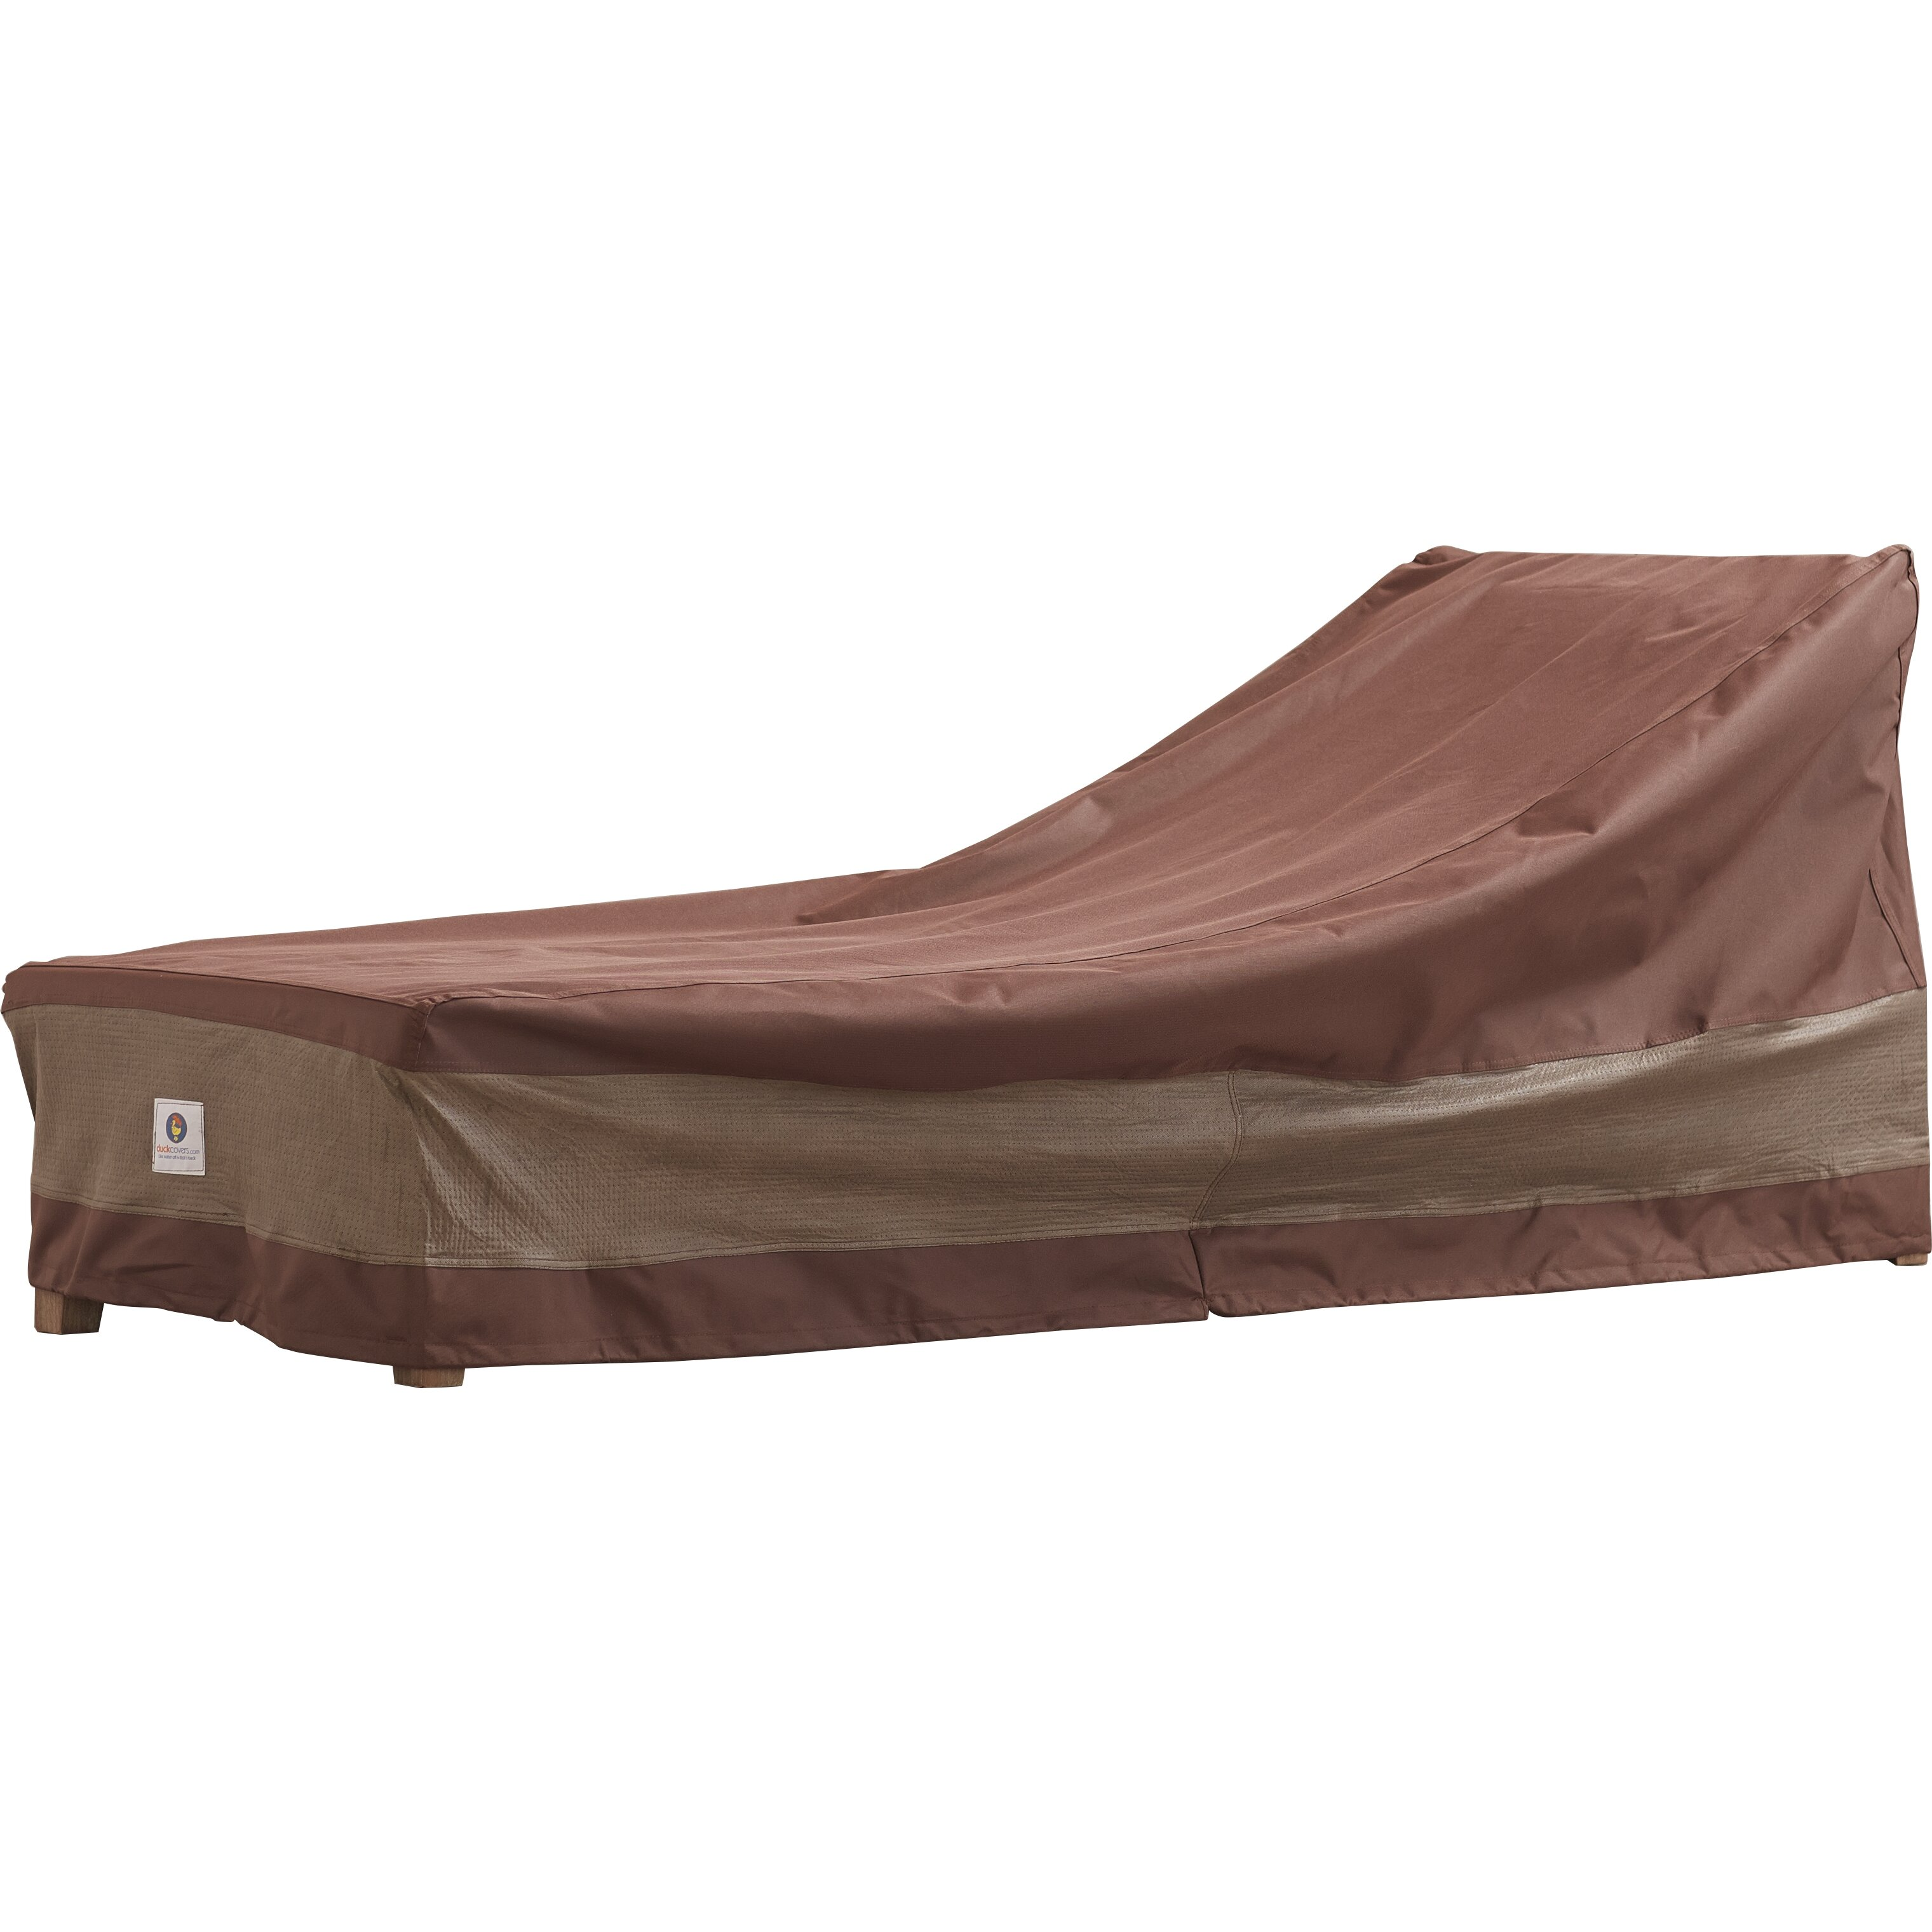 Duck covers ultimate patio chaise lounge cover reviews for Chaise lounge cover